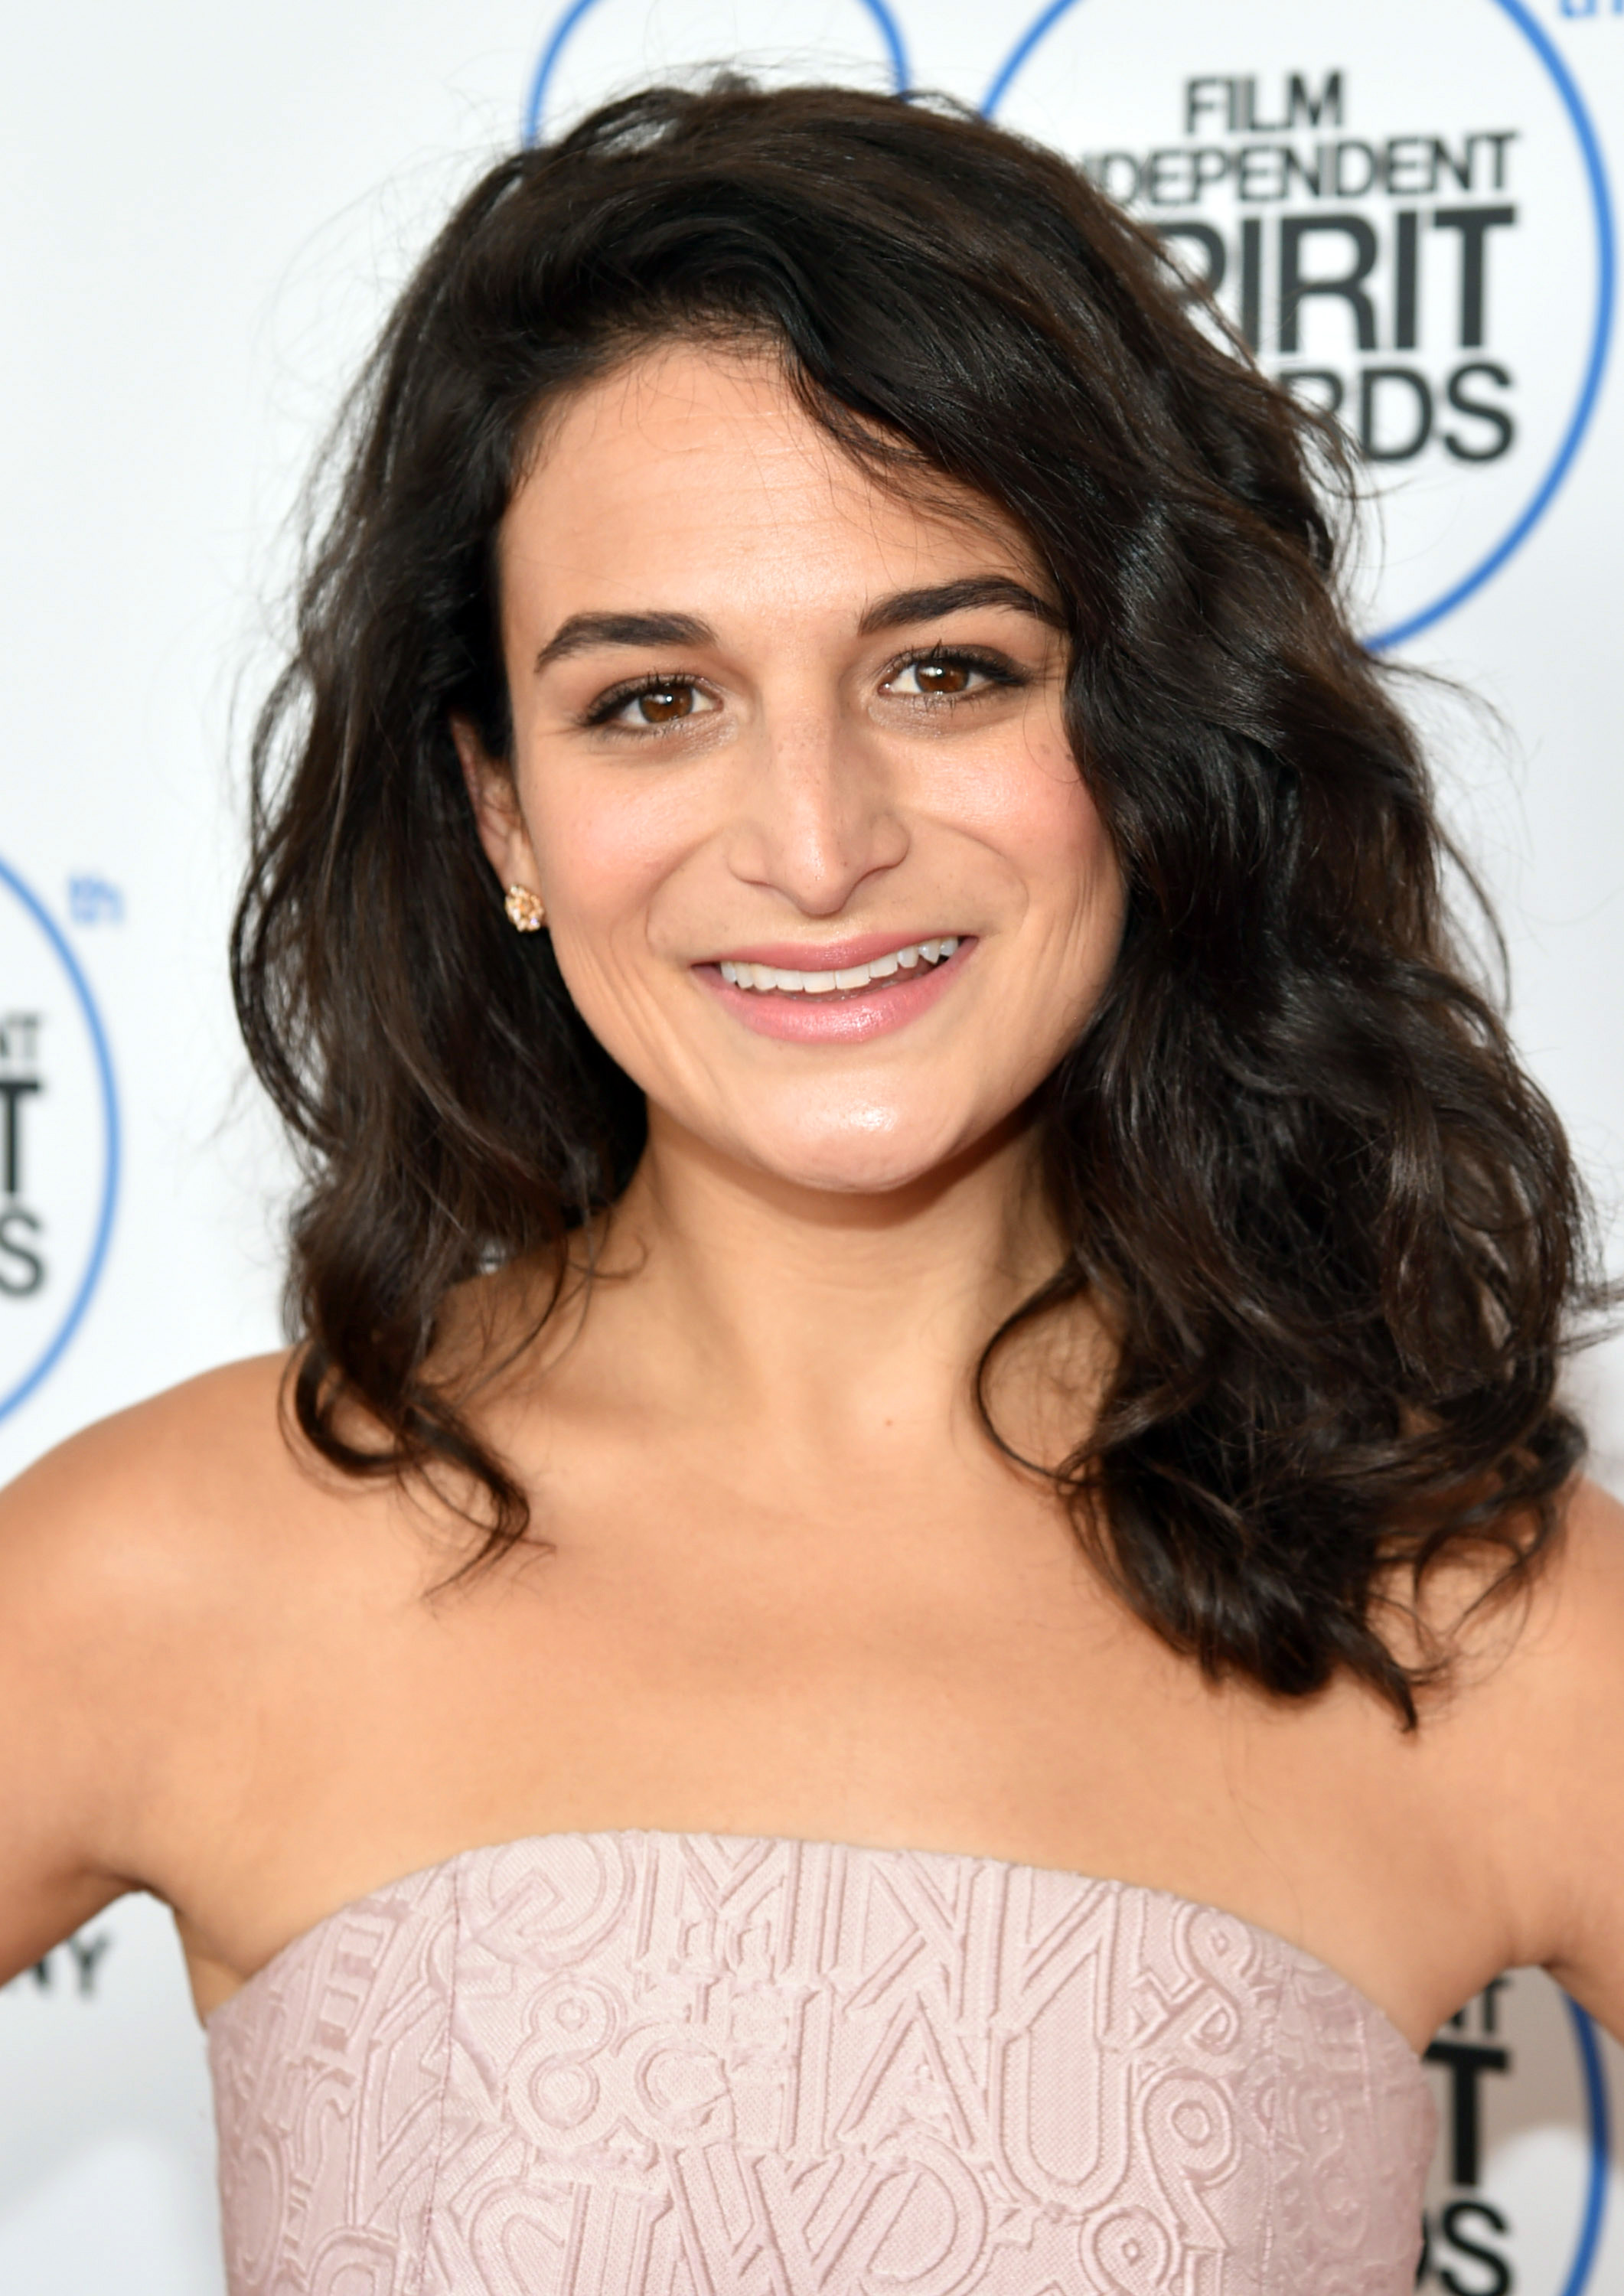 Jenny Slate arrives at the 30th Film Independent Spirit Awards on Saturday, Feb. 21, 2015, in Santa Monica, Calif. (Photo by John Shearer/Invision/AP)